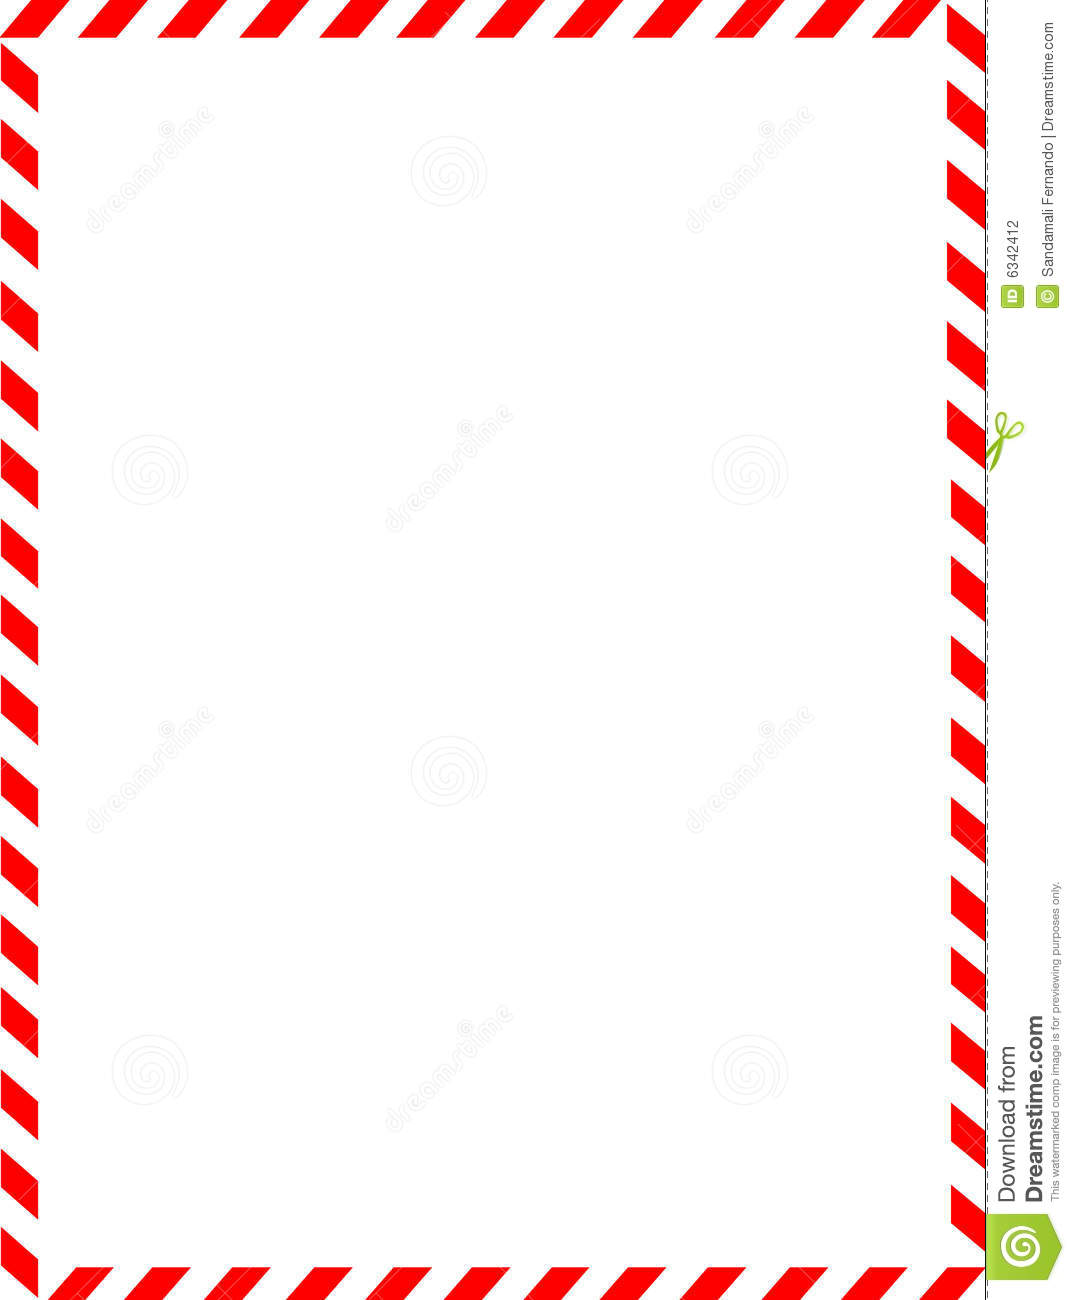 Candy Cane clipart simple Can Candy Clipart Border